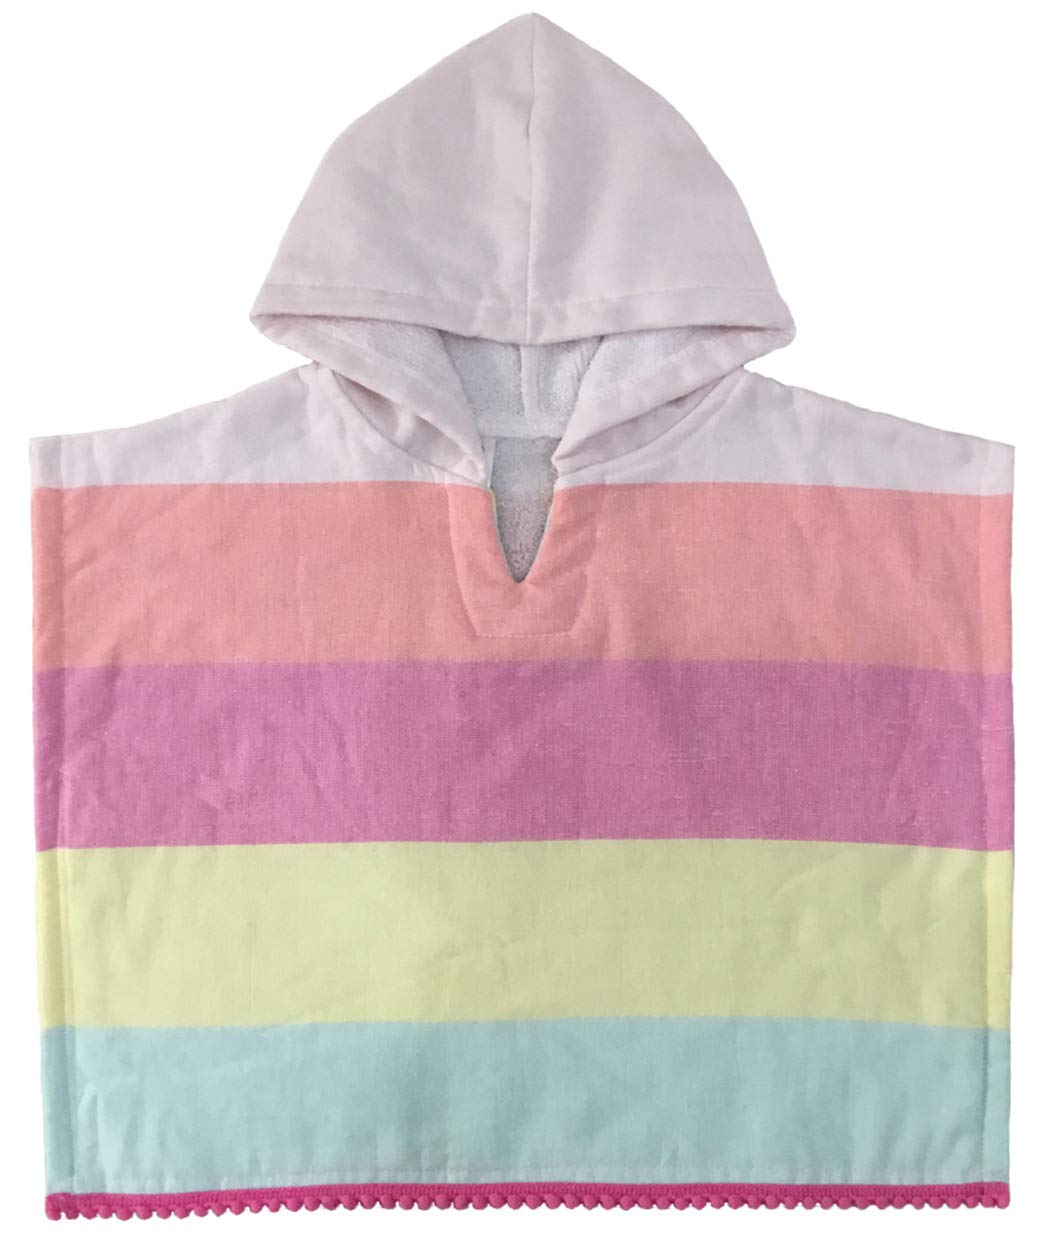 PINKEONLINE Hooded Towel Poncho Cotton Terry V-Neck Cape Cloak Cover Up 16.5x16.5 inches for Toddler Baby Infant, Cradle Pink Peach Yellow Blue Stripe